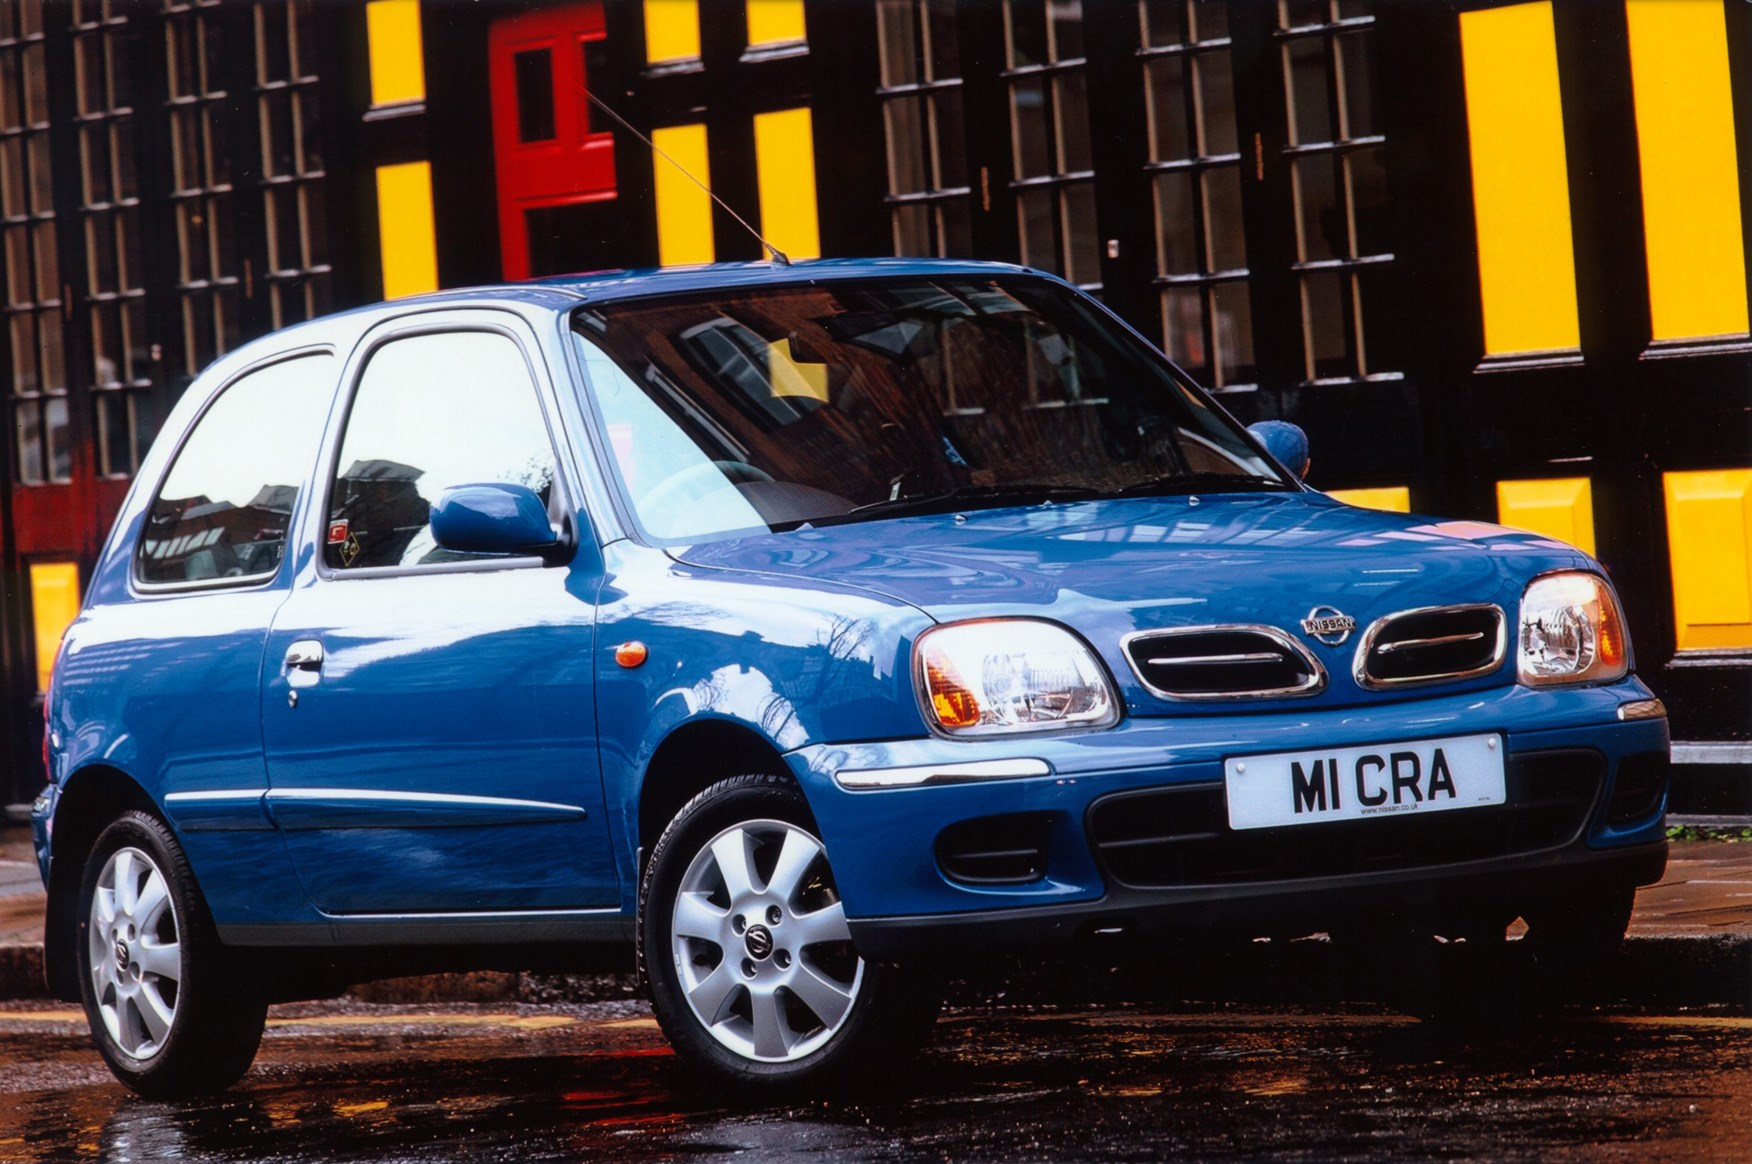 Nissan Used Cars For Sale >> Nissan Micra Hatchback Review (1993 - 2002) | Parkers